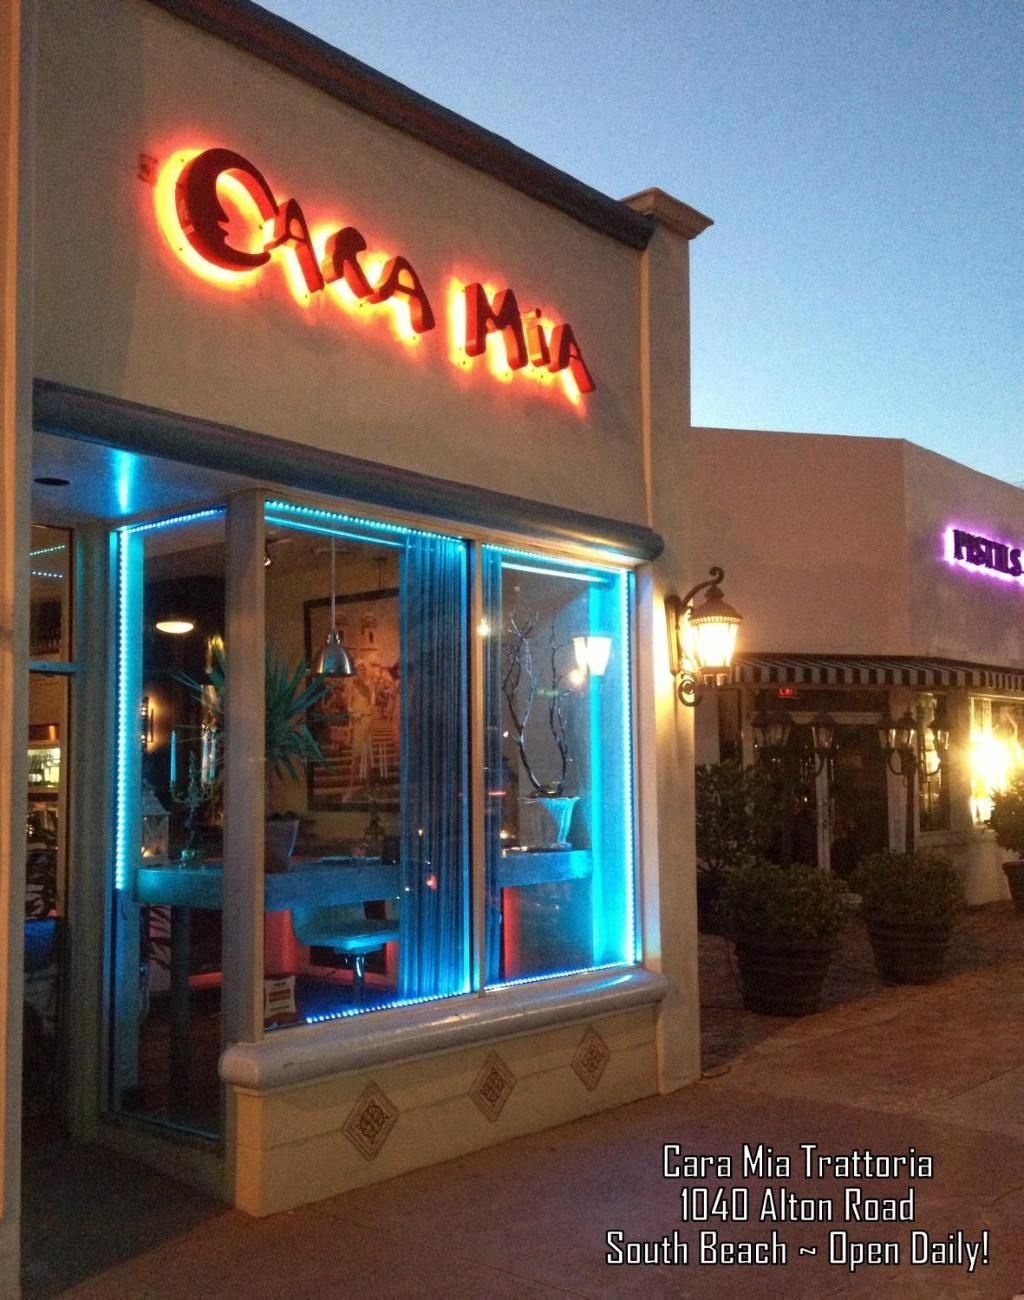 Cara Mia Trattoria Miami Beach Restaurant Reviews Phone Number Photos Tripadvisor